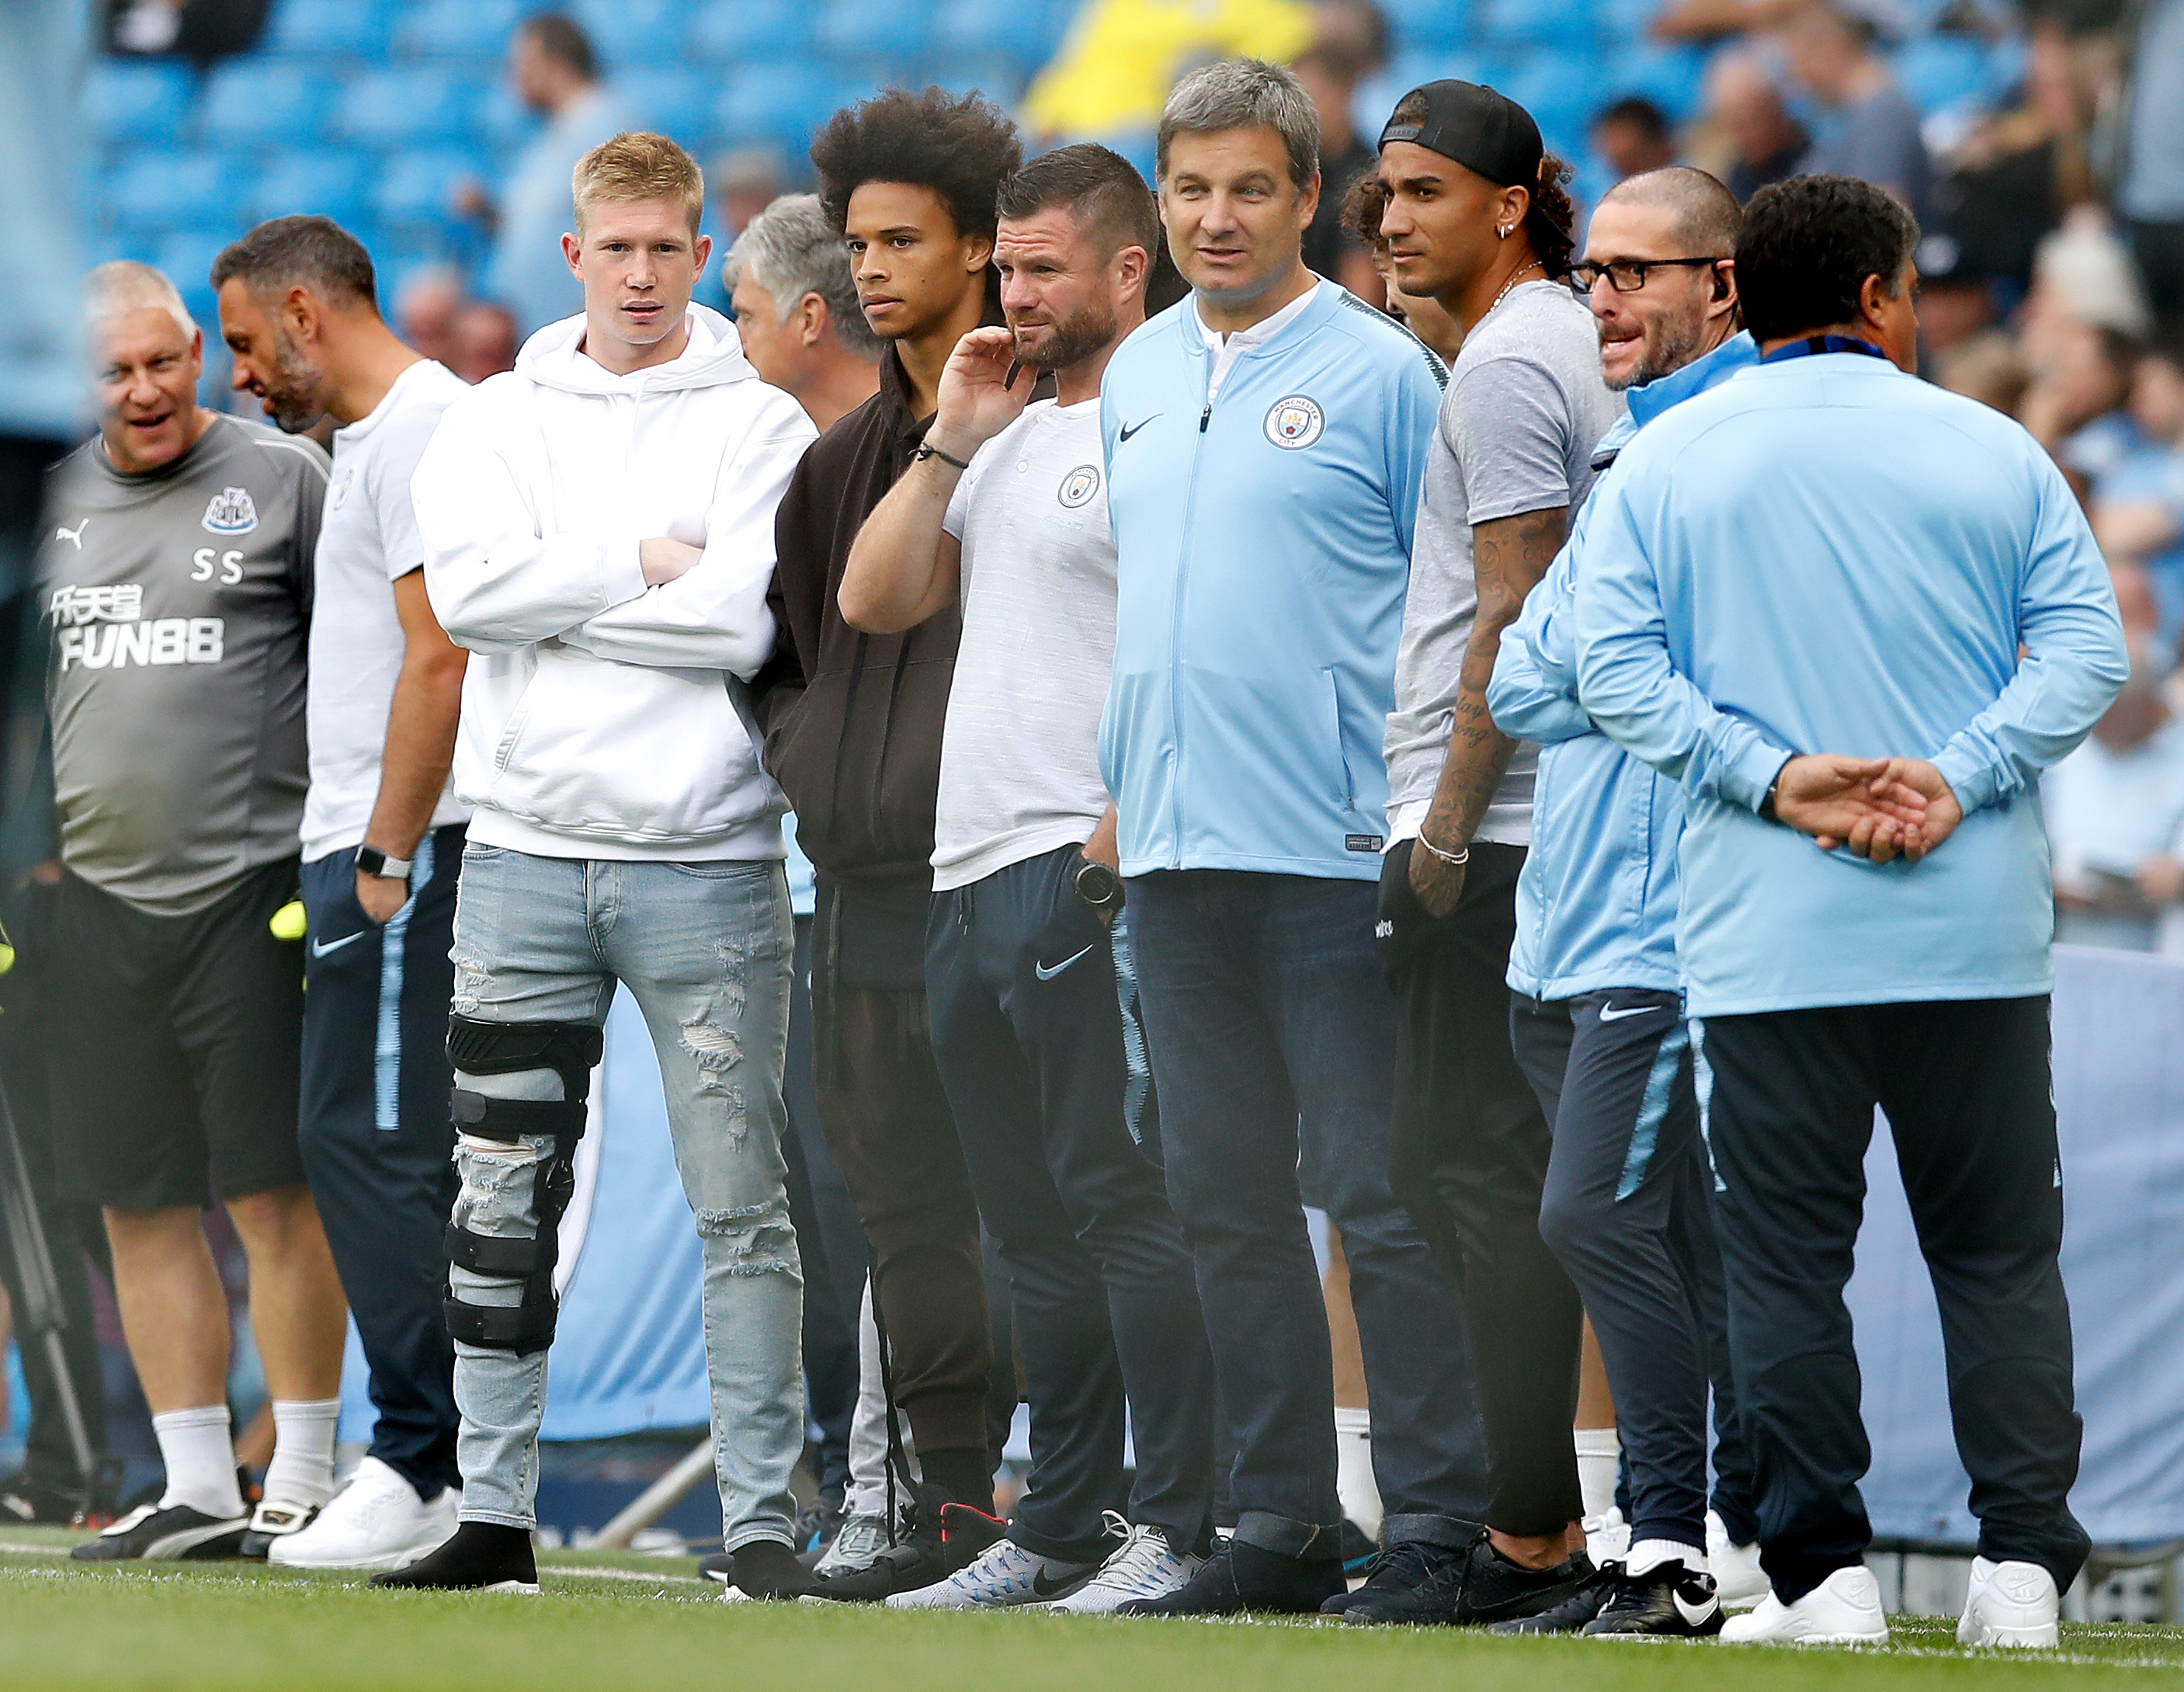 De Bruyne watching on in his knee brace. Image: PA Images